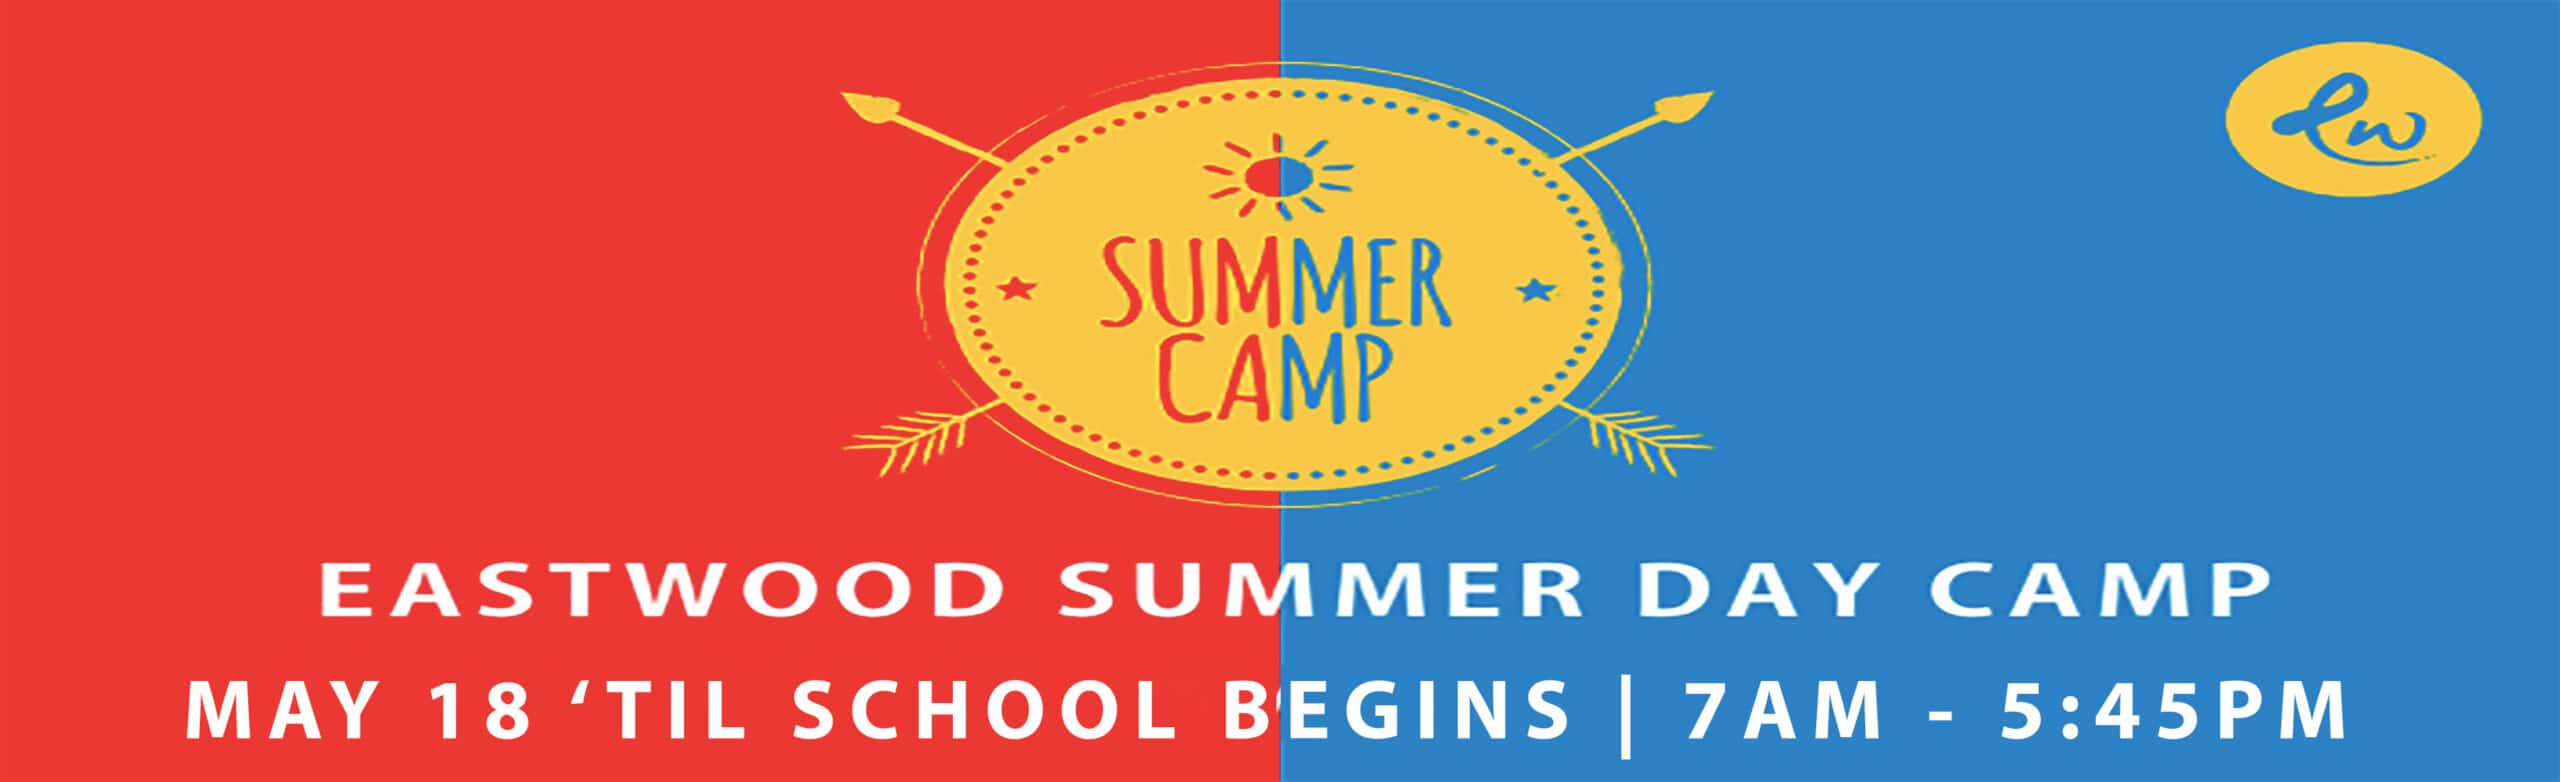 Summer-Day-Camp-2020-slider-3600x1100